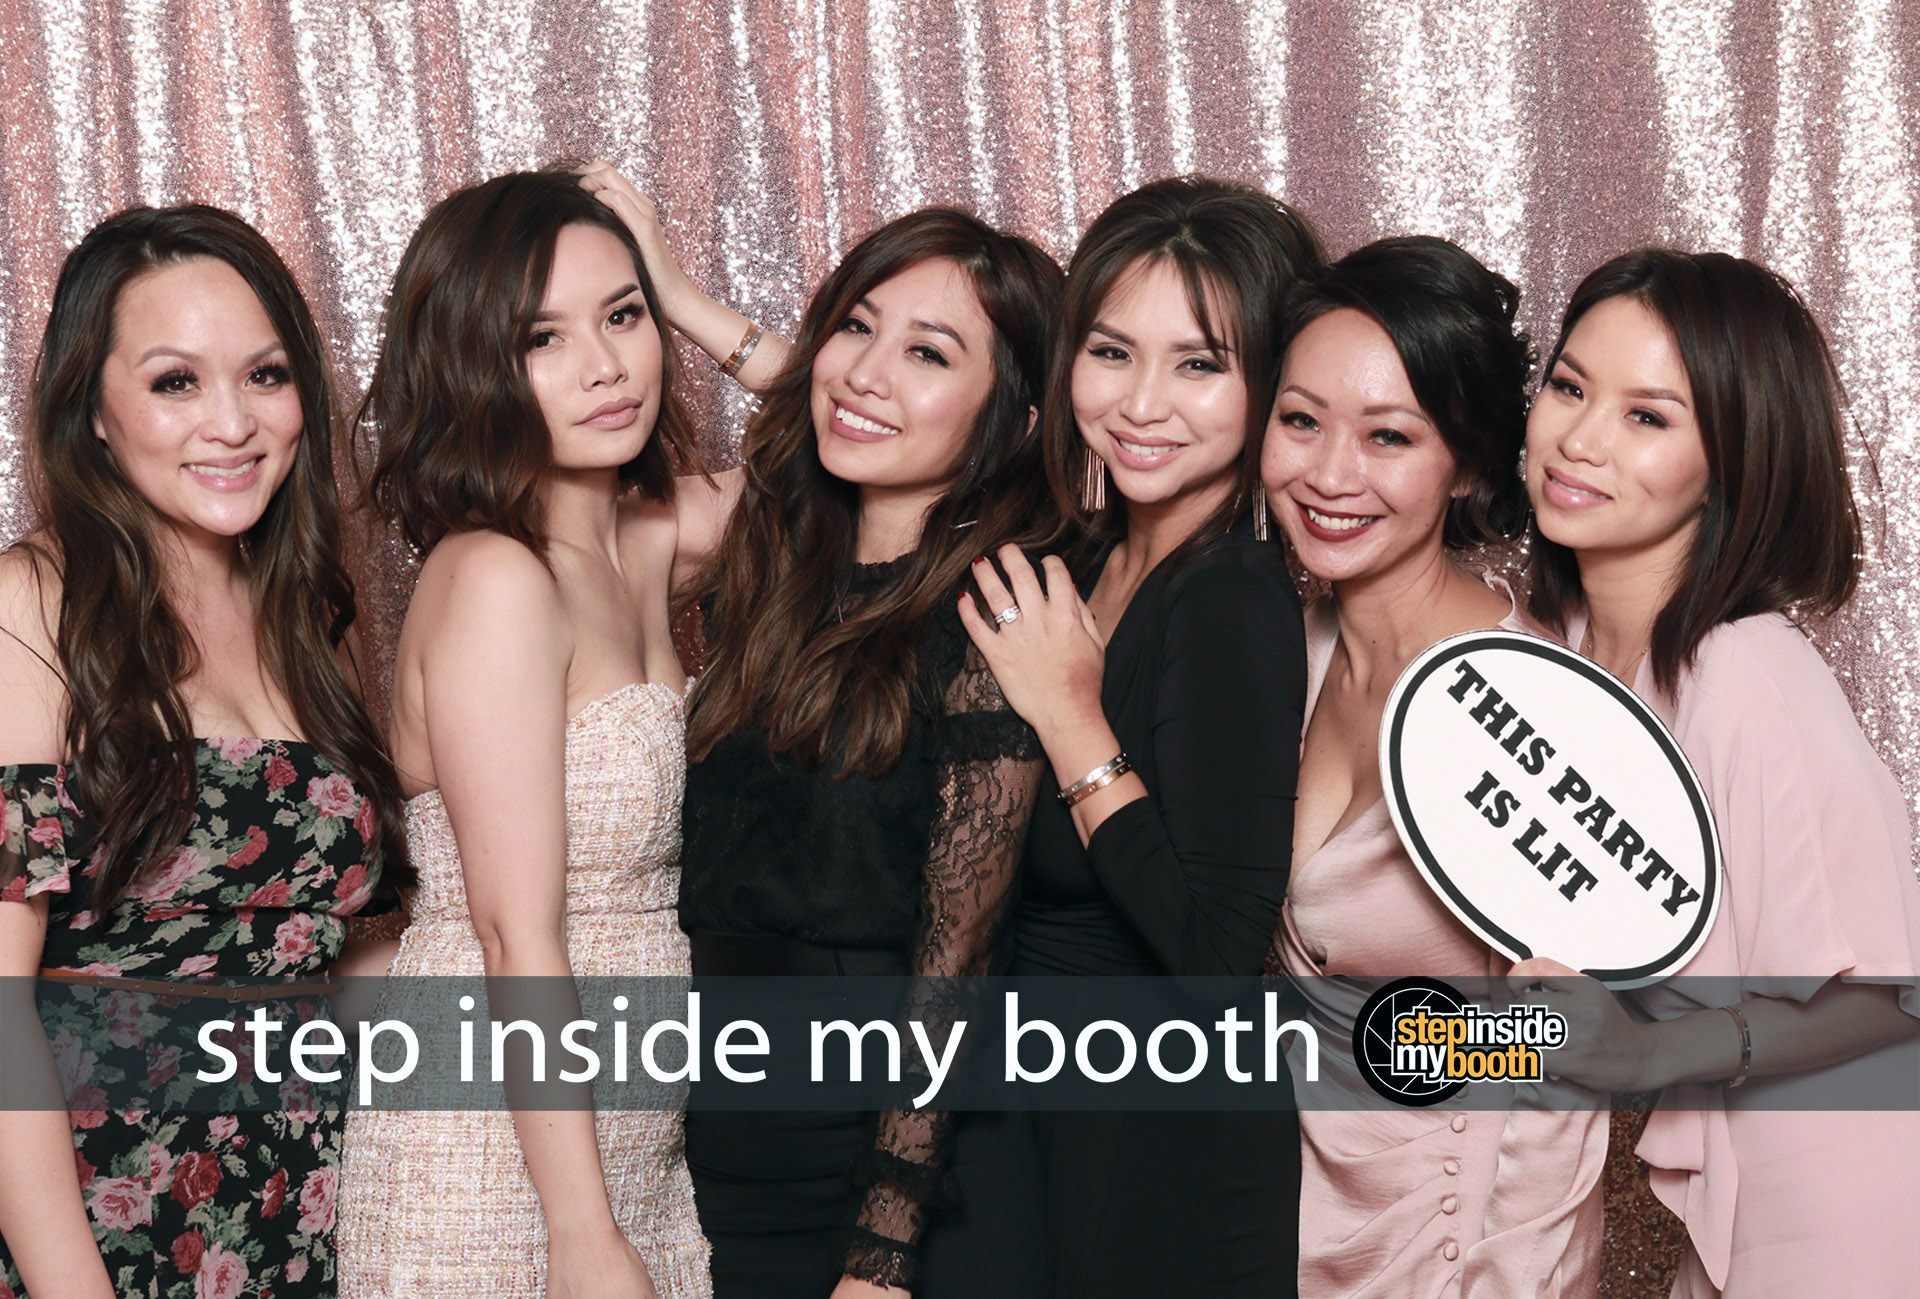 Step Inside My Booth - Stephanie and Gerard's Wedding on November 18, 2018. Studio quality photos in Step Inside My Booth photo booth.